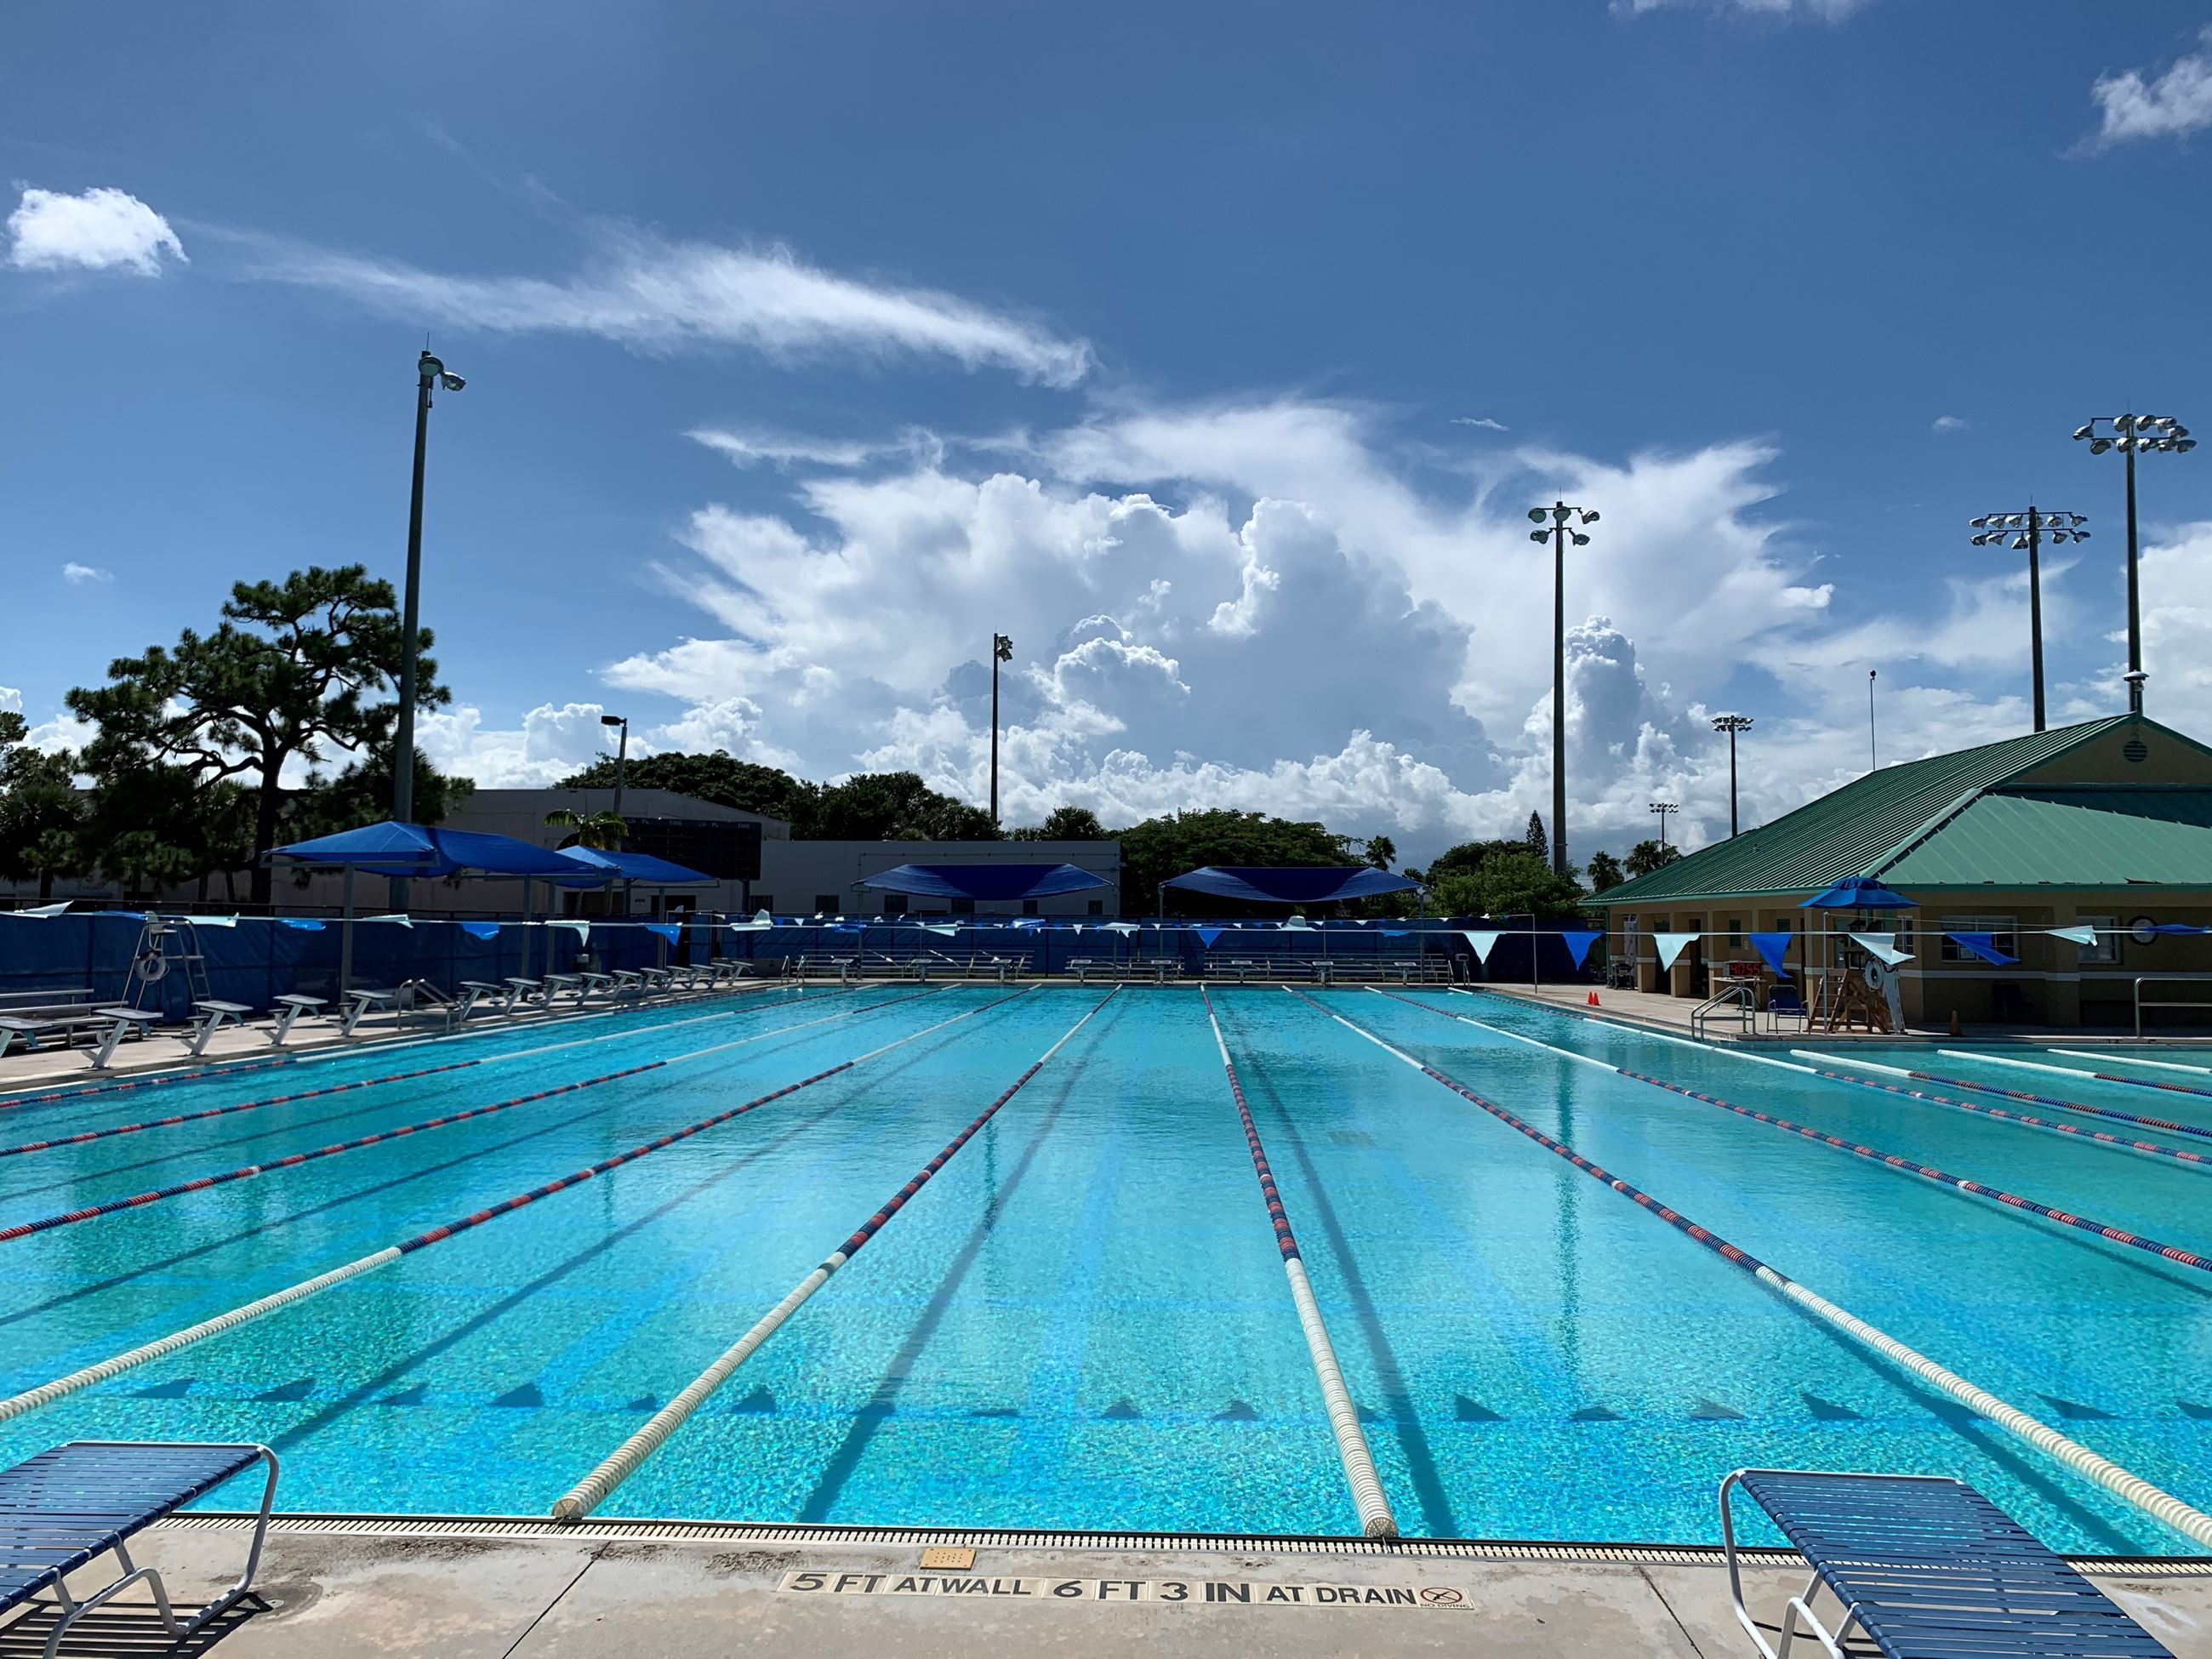 Aquatic Center east to west